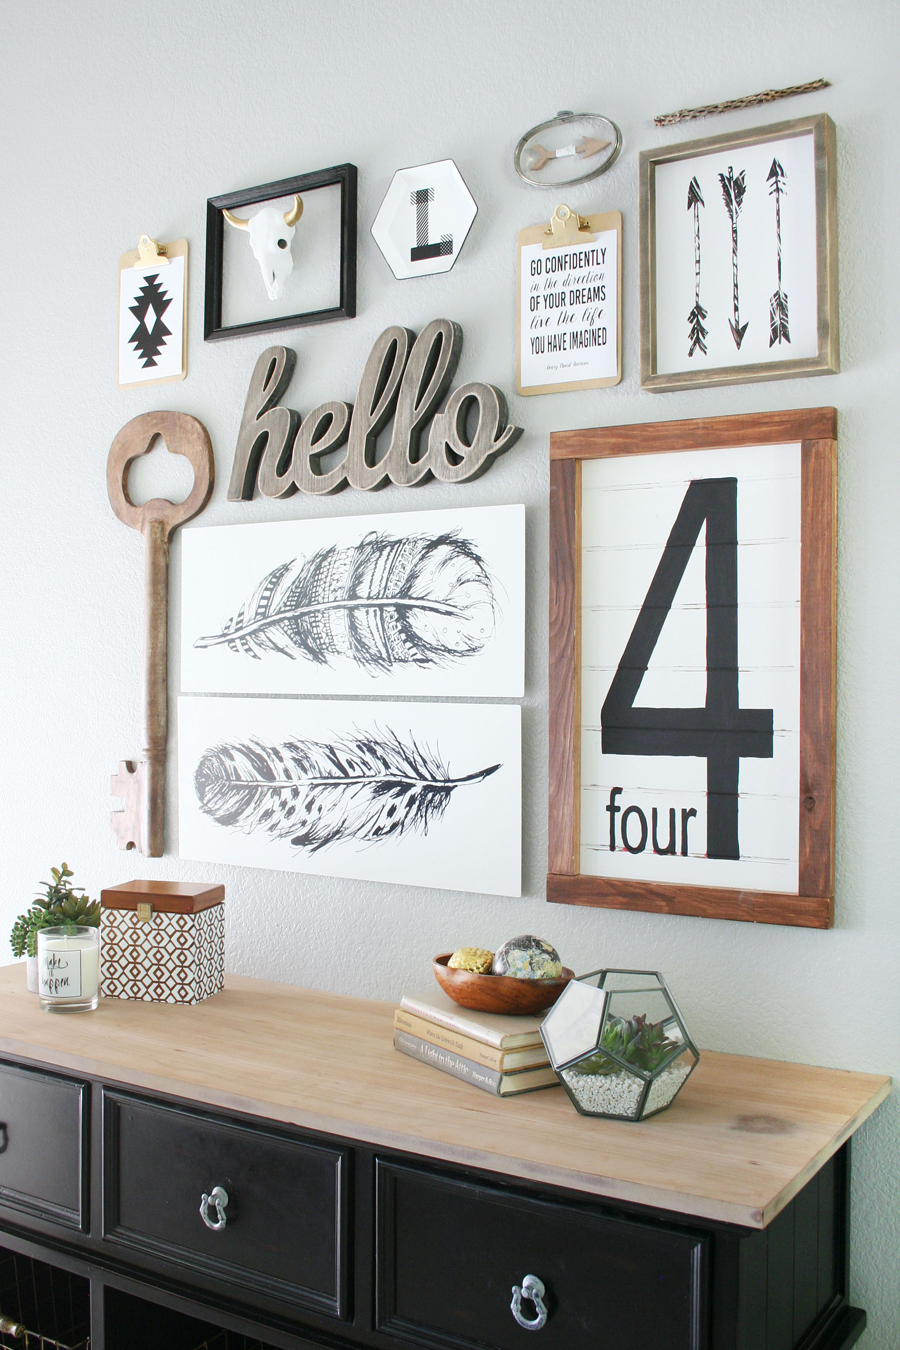 Gallery Wall Ideas Black And White : Black white gallery wall